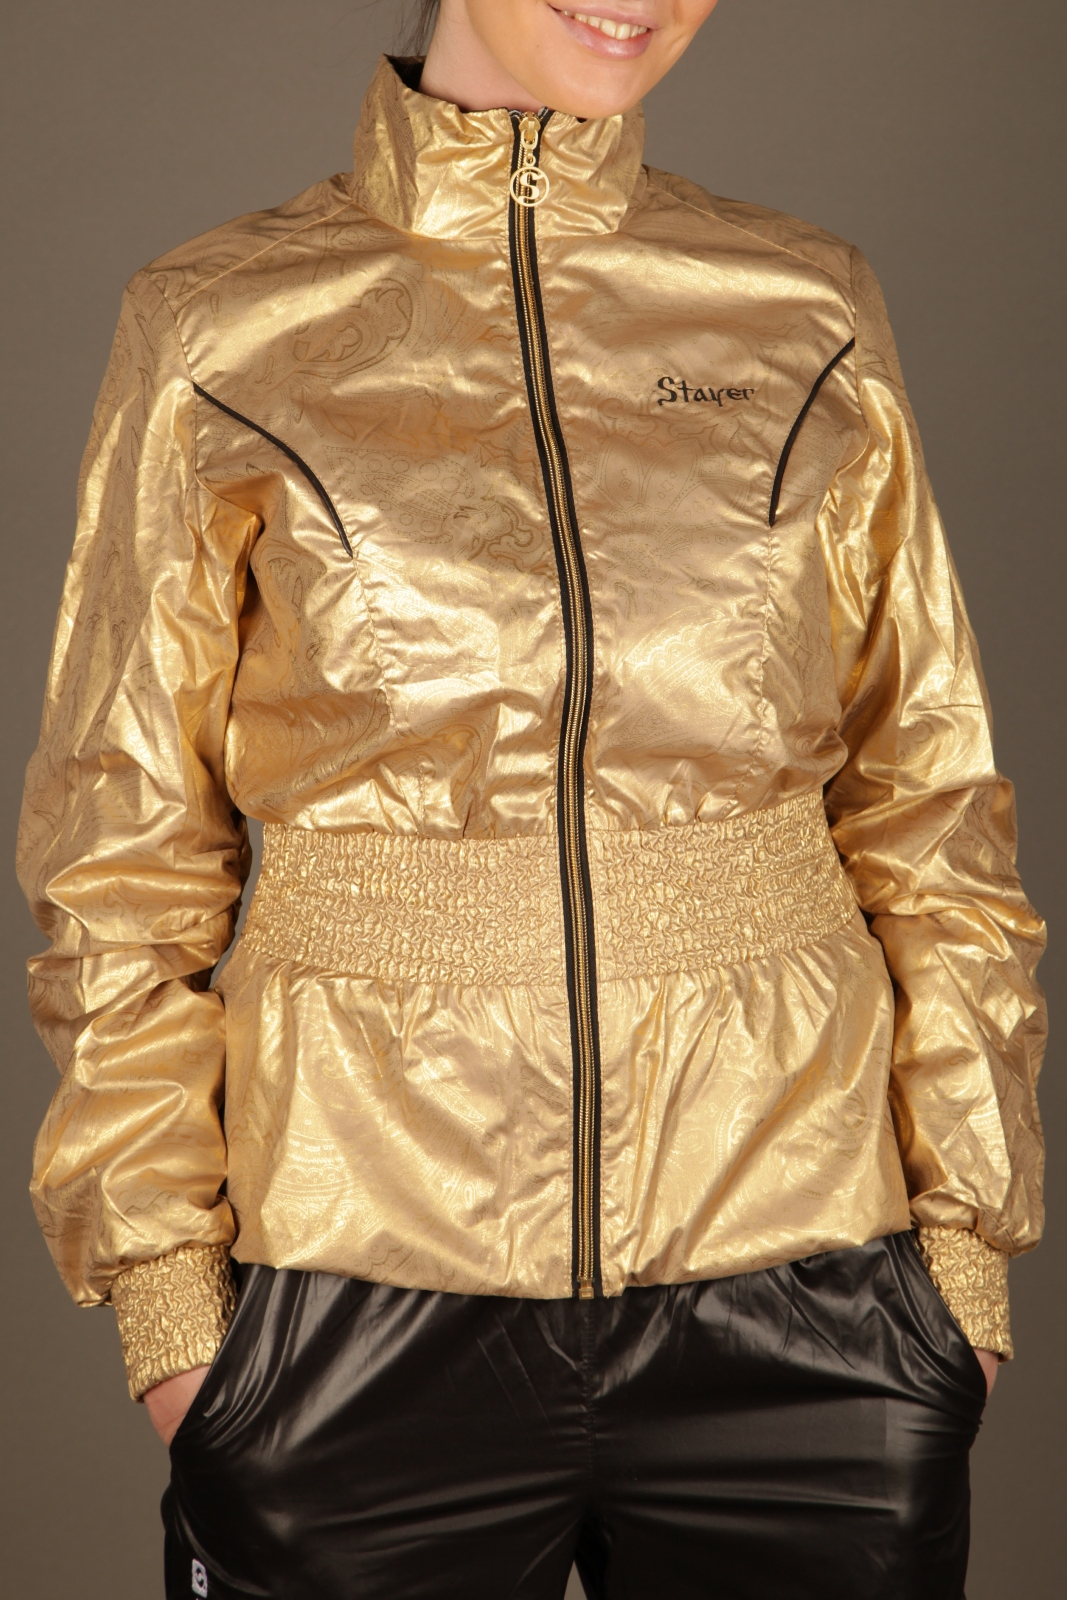 Black and Gold Stayer Tracksuit 2